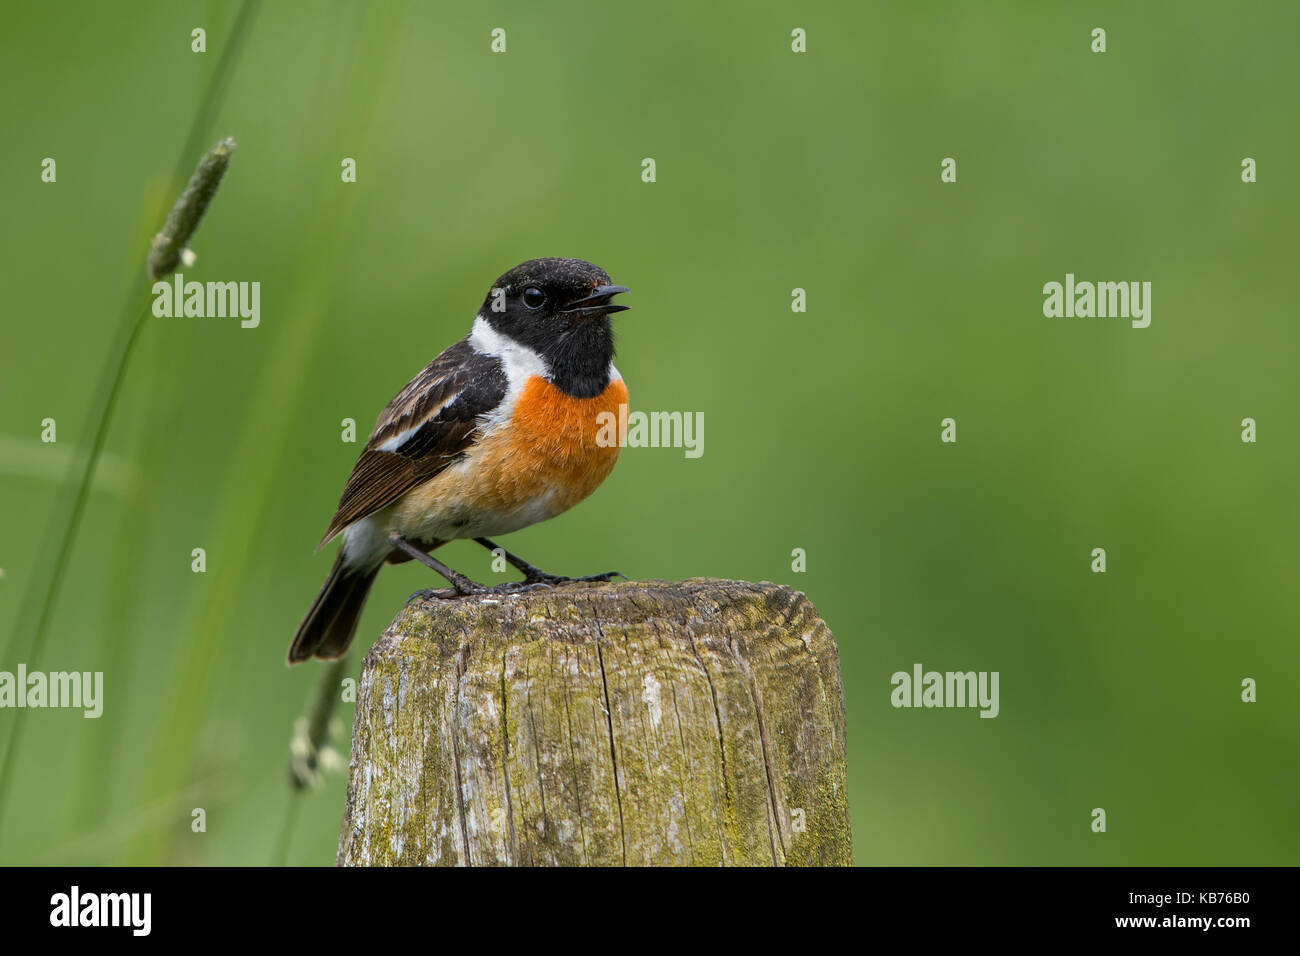 European Stonechat (Saxicola rubicola) perched on a pole and looking at camera, The Netherlands, Gelderland, Elburg - Stock Image